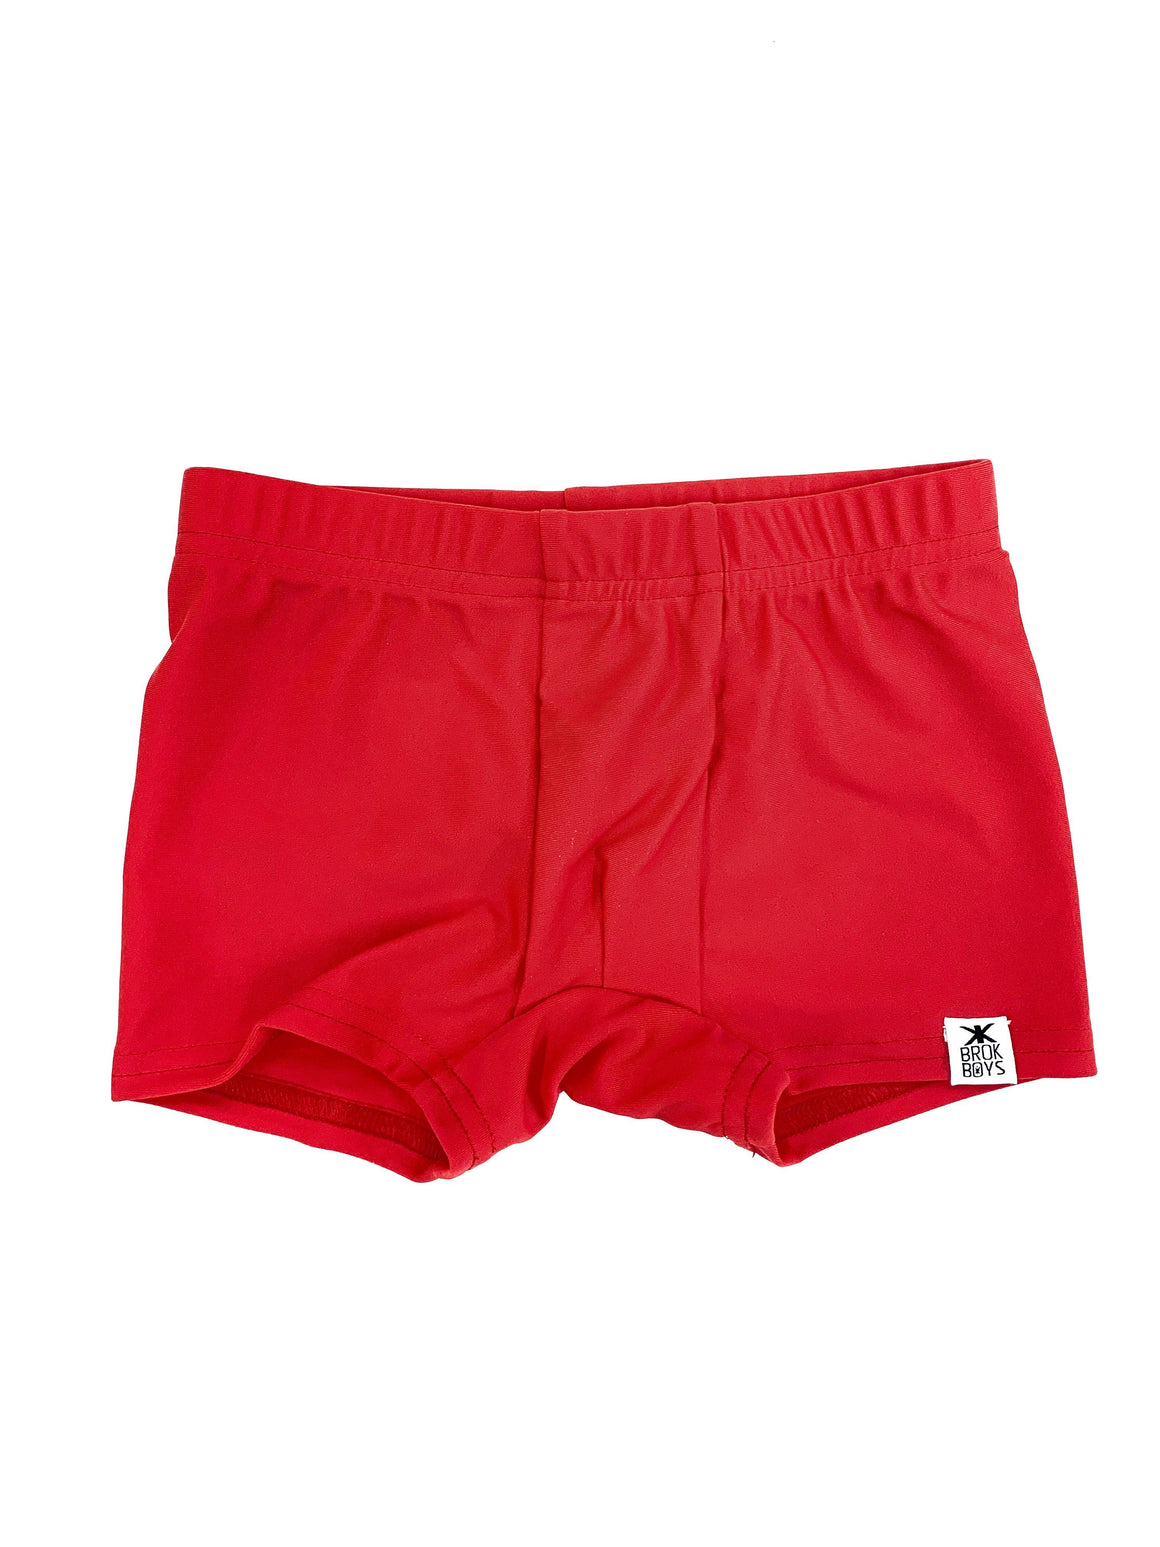 Lifeguard Red Shortie Swimmers